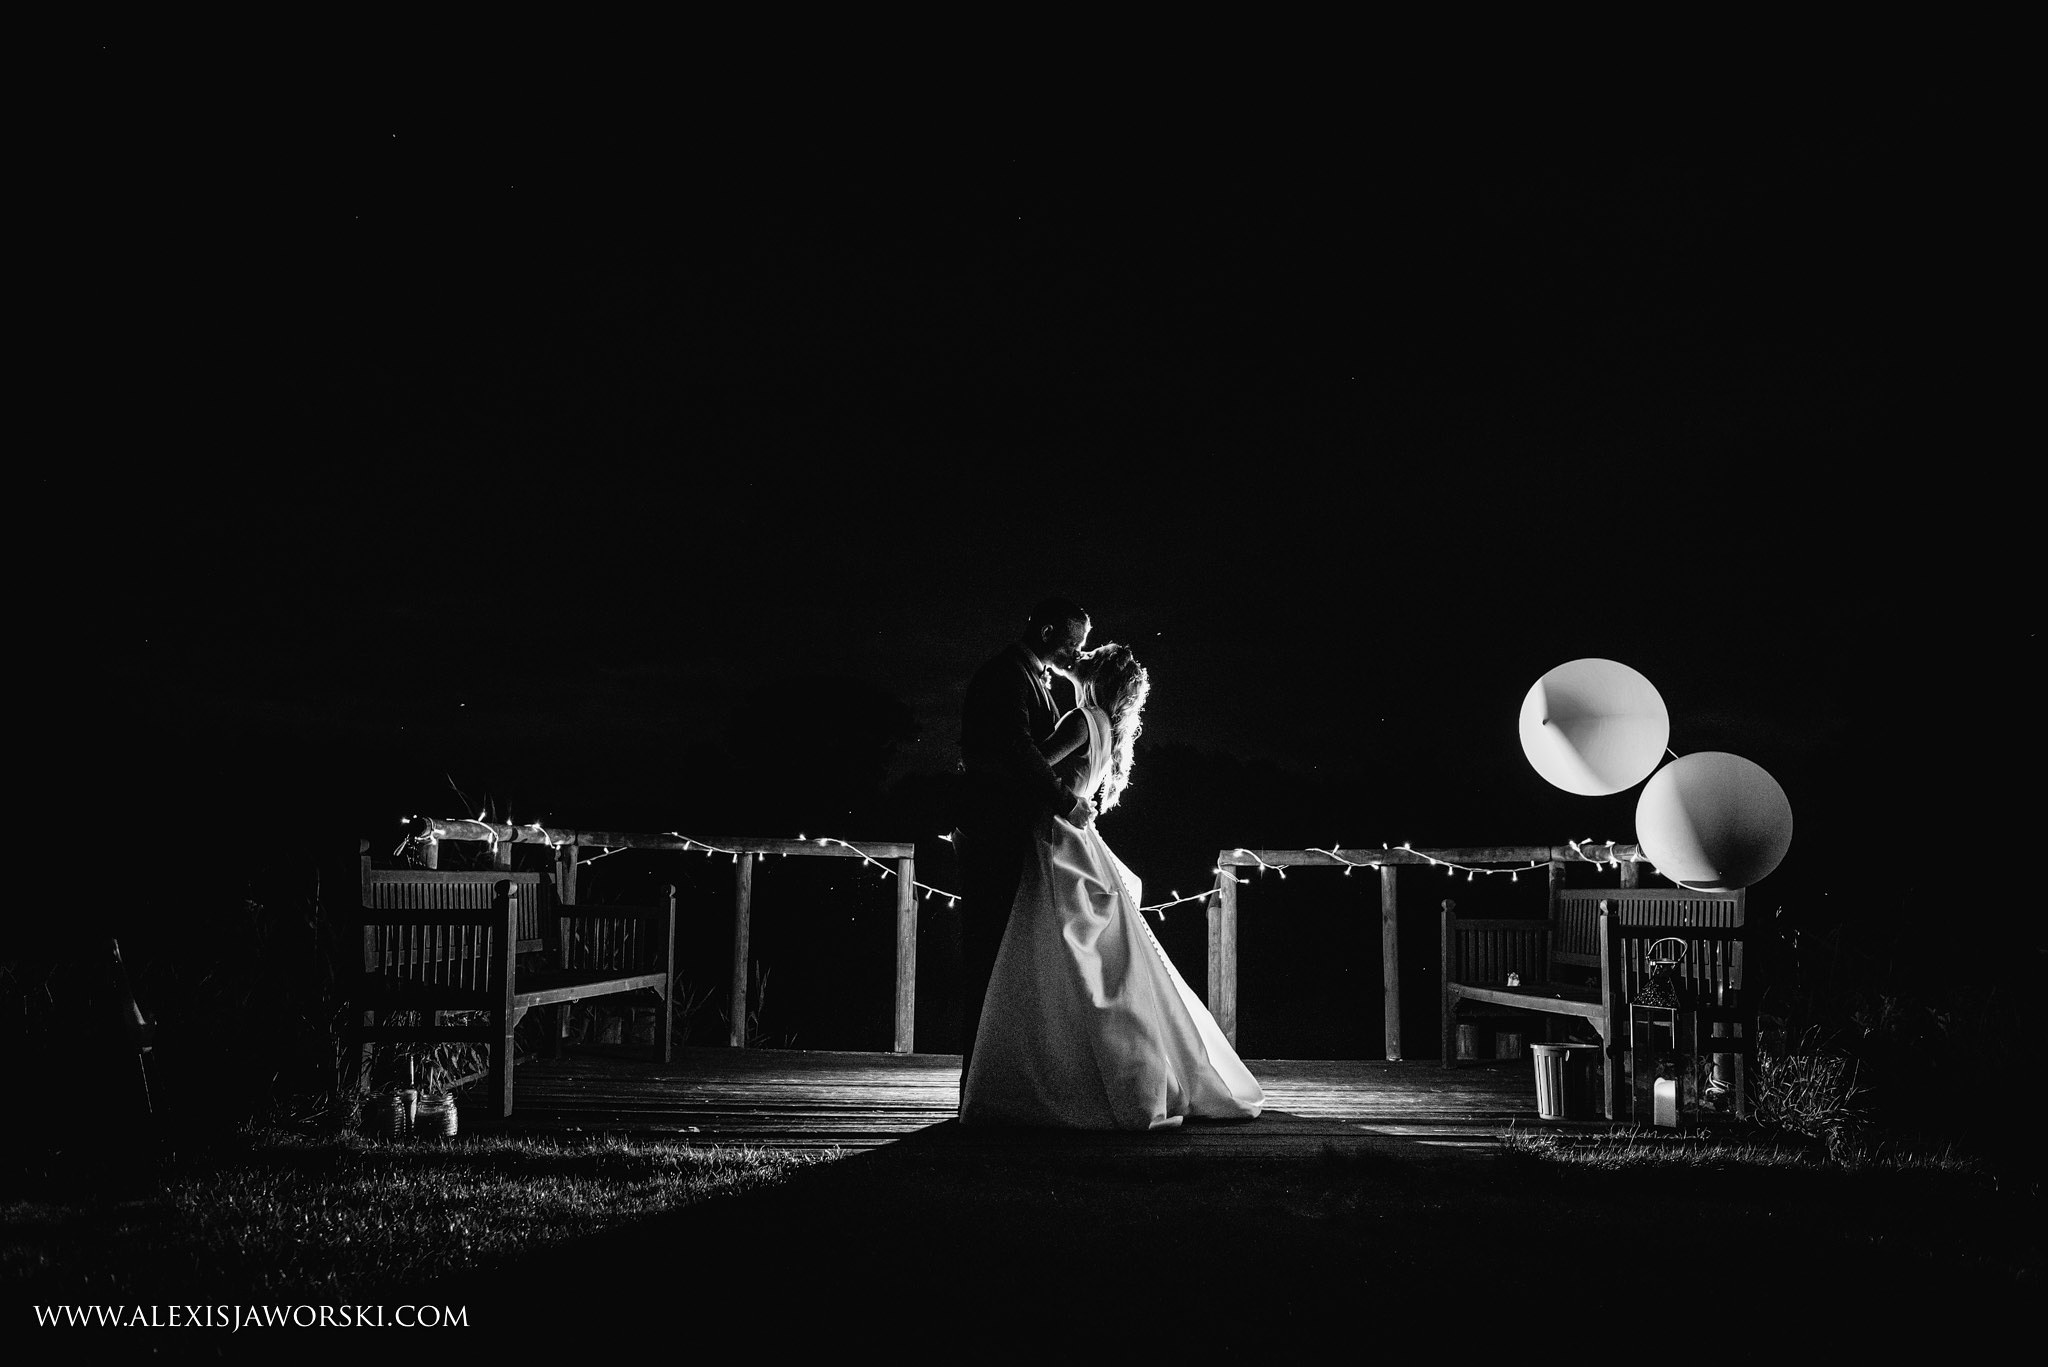 night portrait of the bride and groom